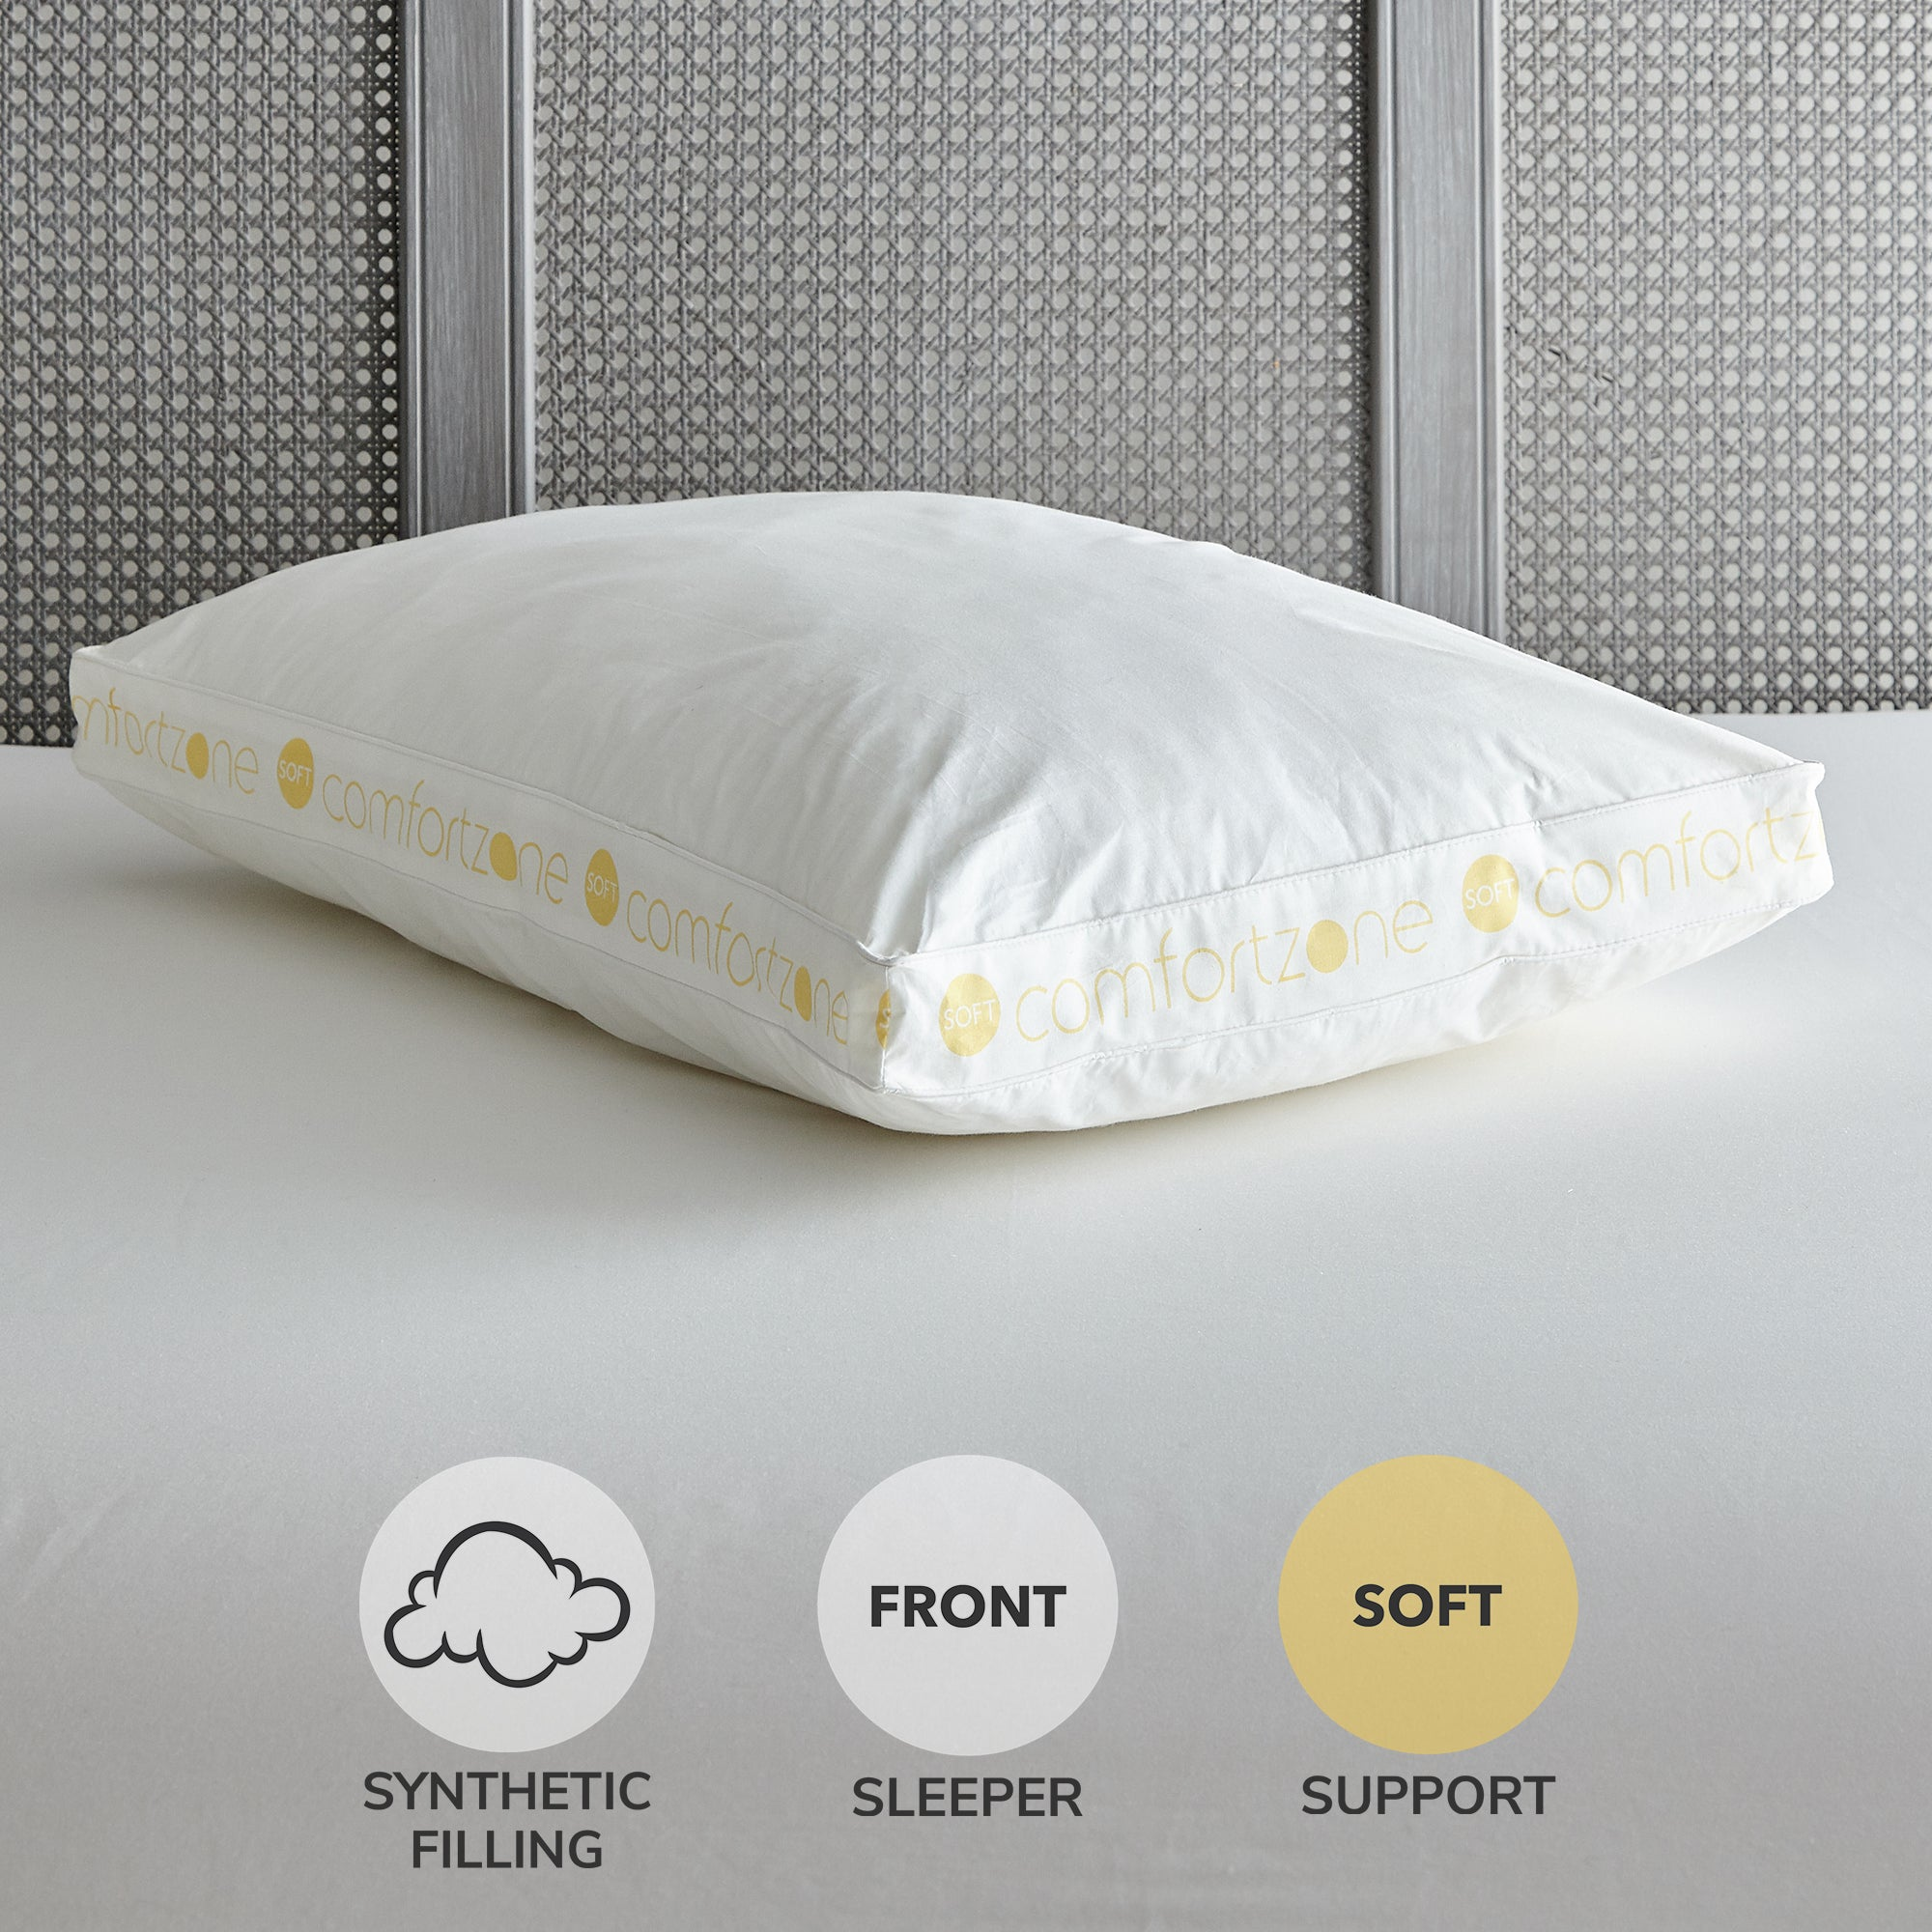 Comfort Zone Hollowfibre Soft Support Pillow